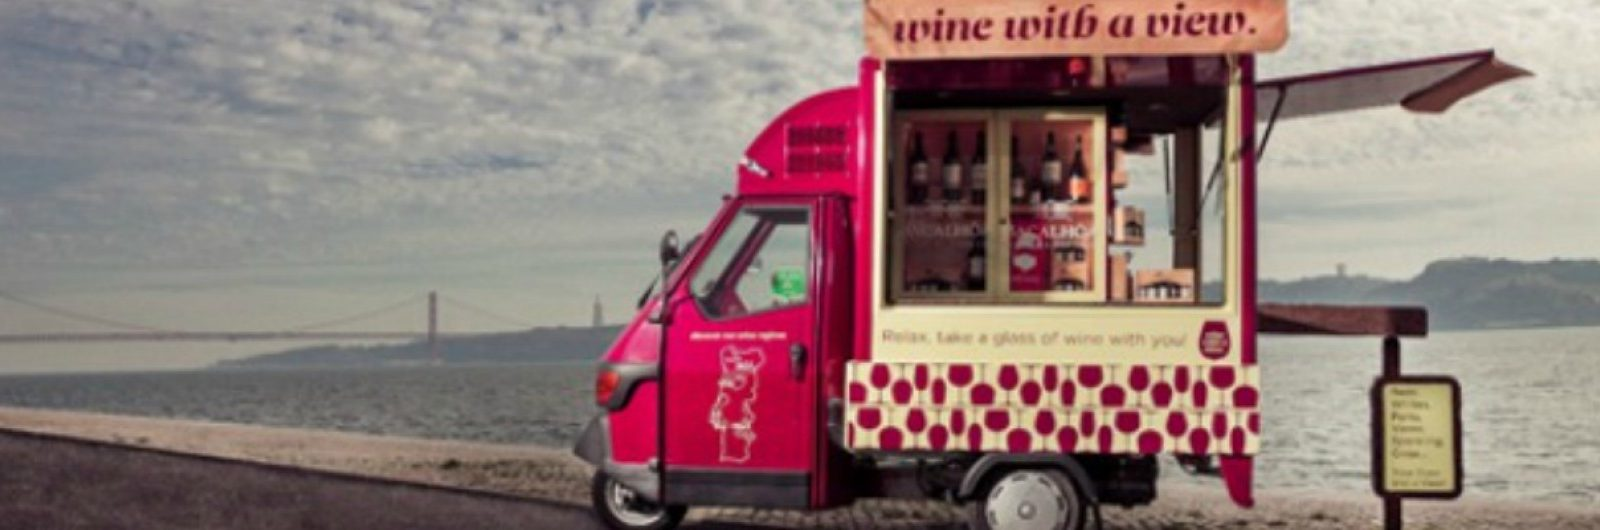 Wine With a View franchising